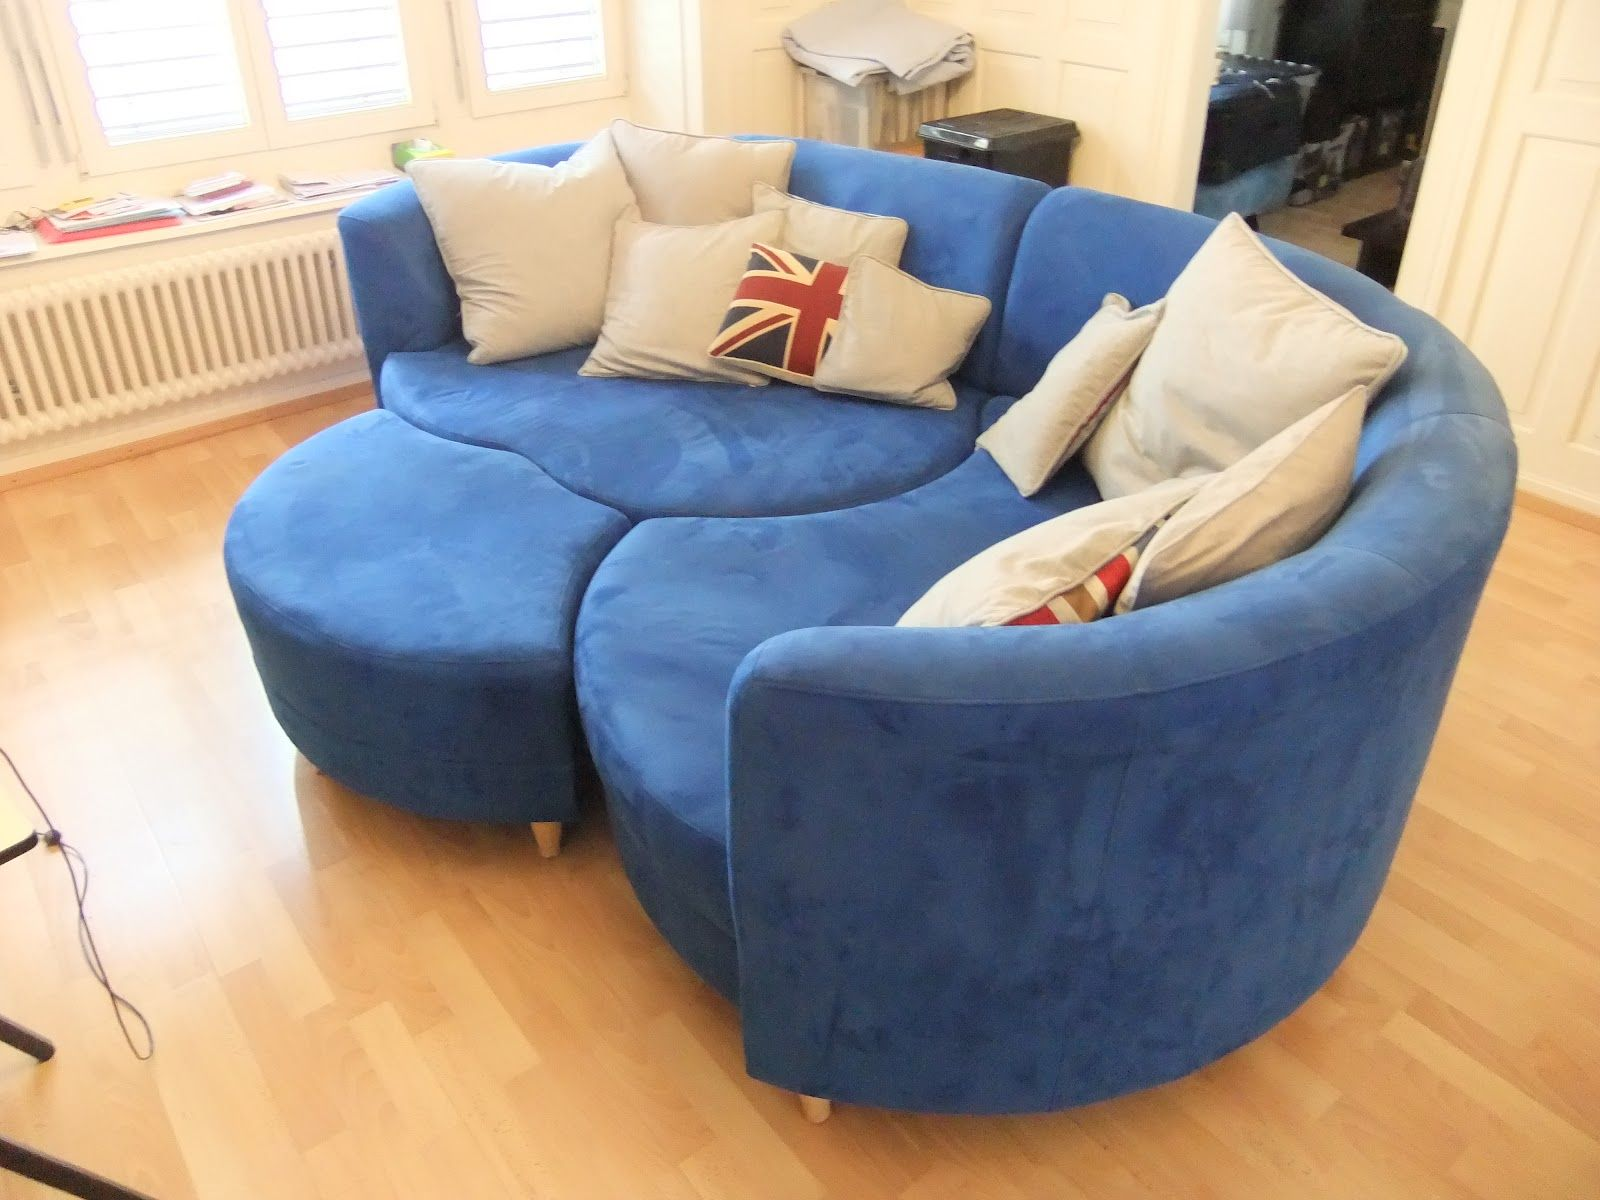 Enchanting Curved Blue Sofa Amazing Curved Blue Sofa 34 For Your